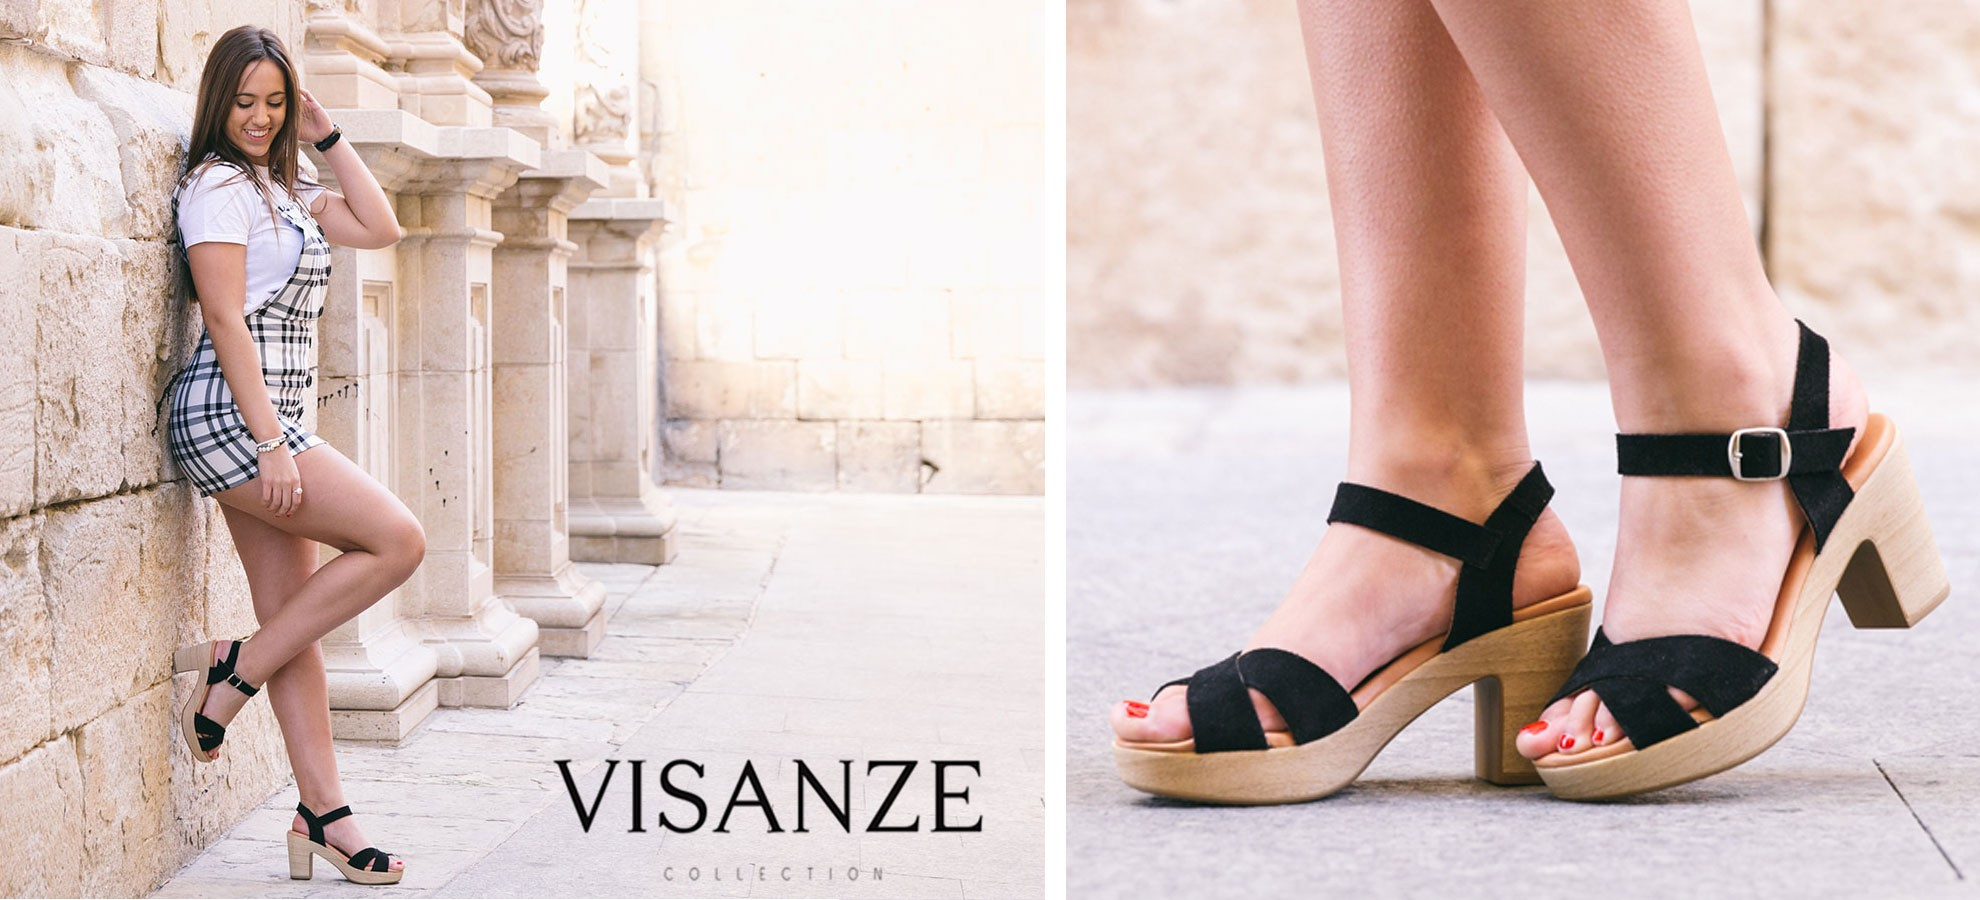 Visanze Collection